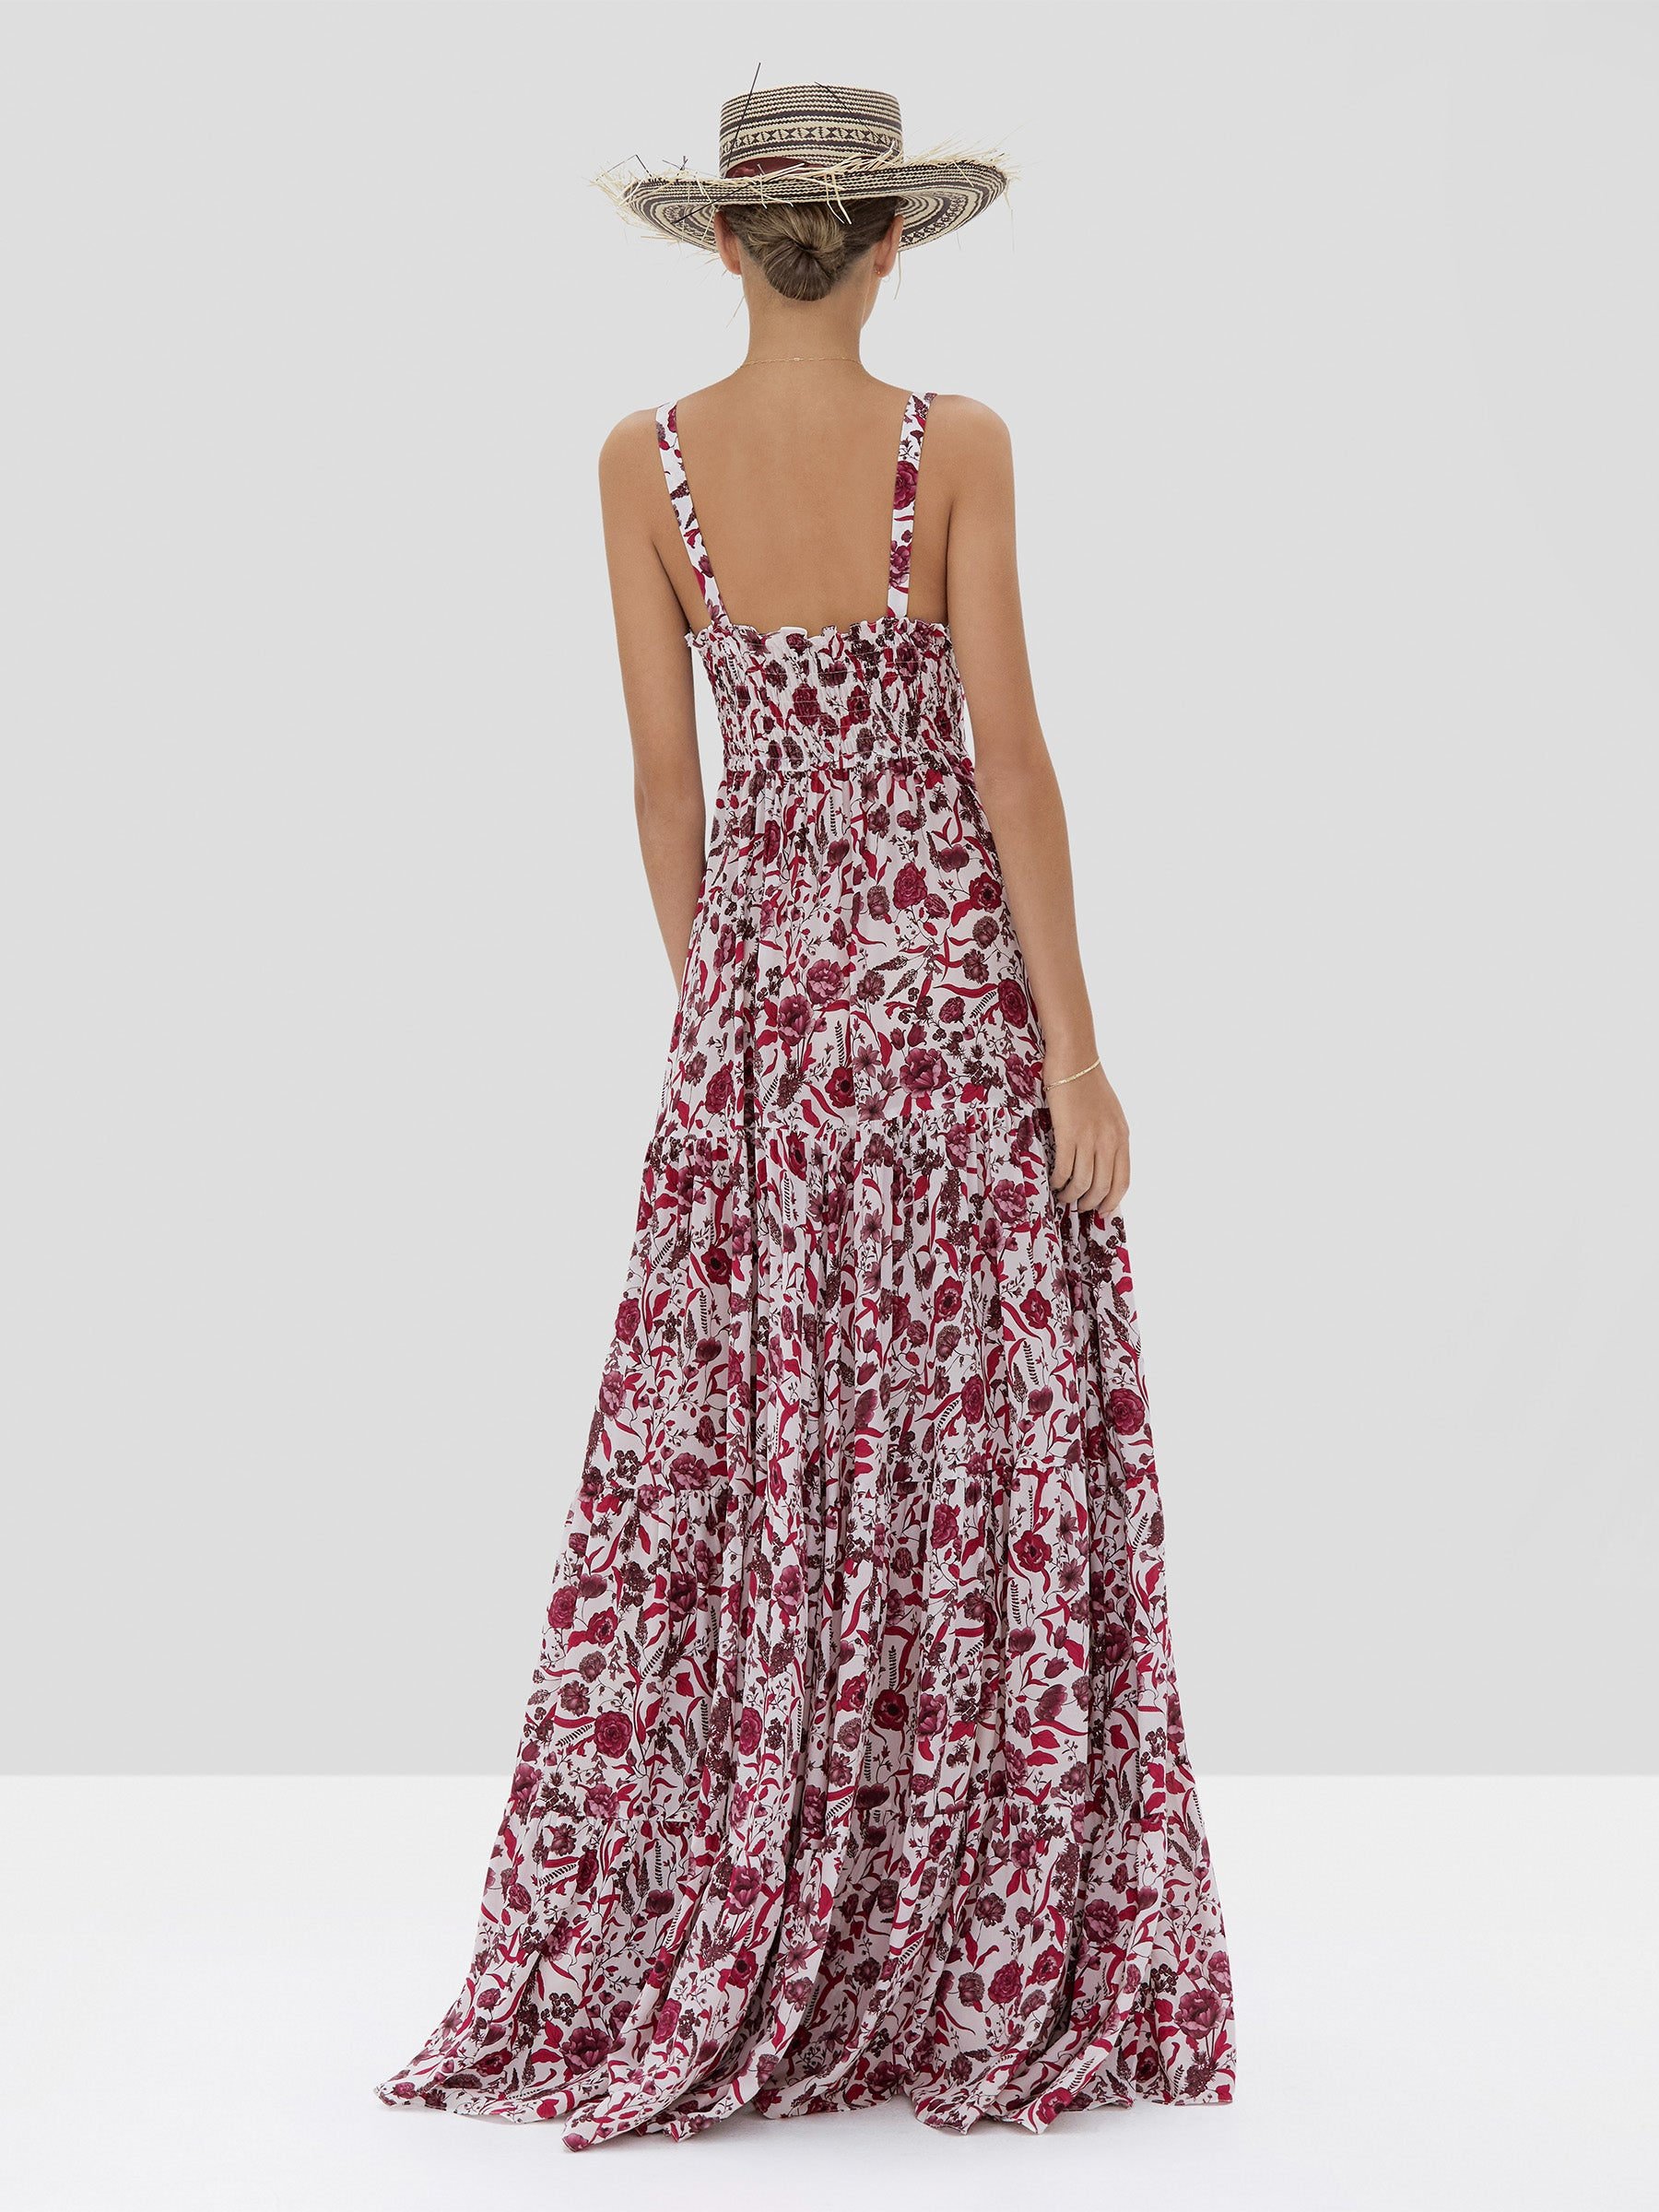 The Zofia Dress in Berry Floral from the Spring Summer 2020 - Rear View